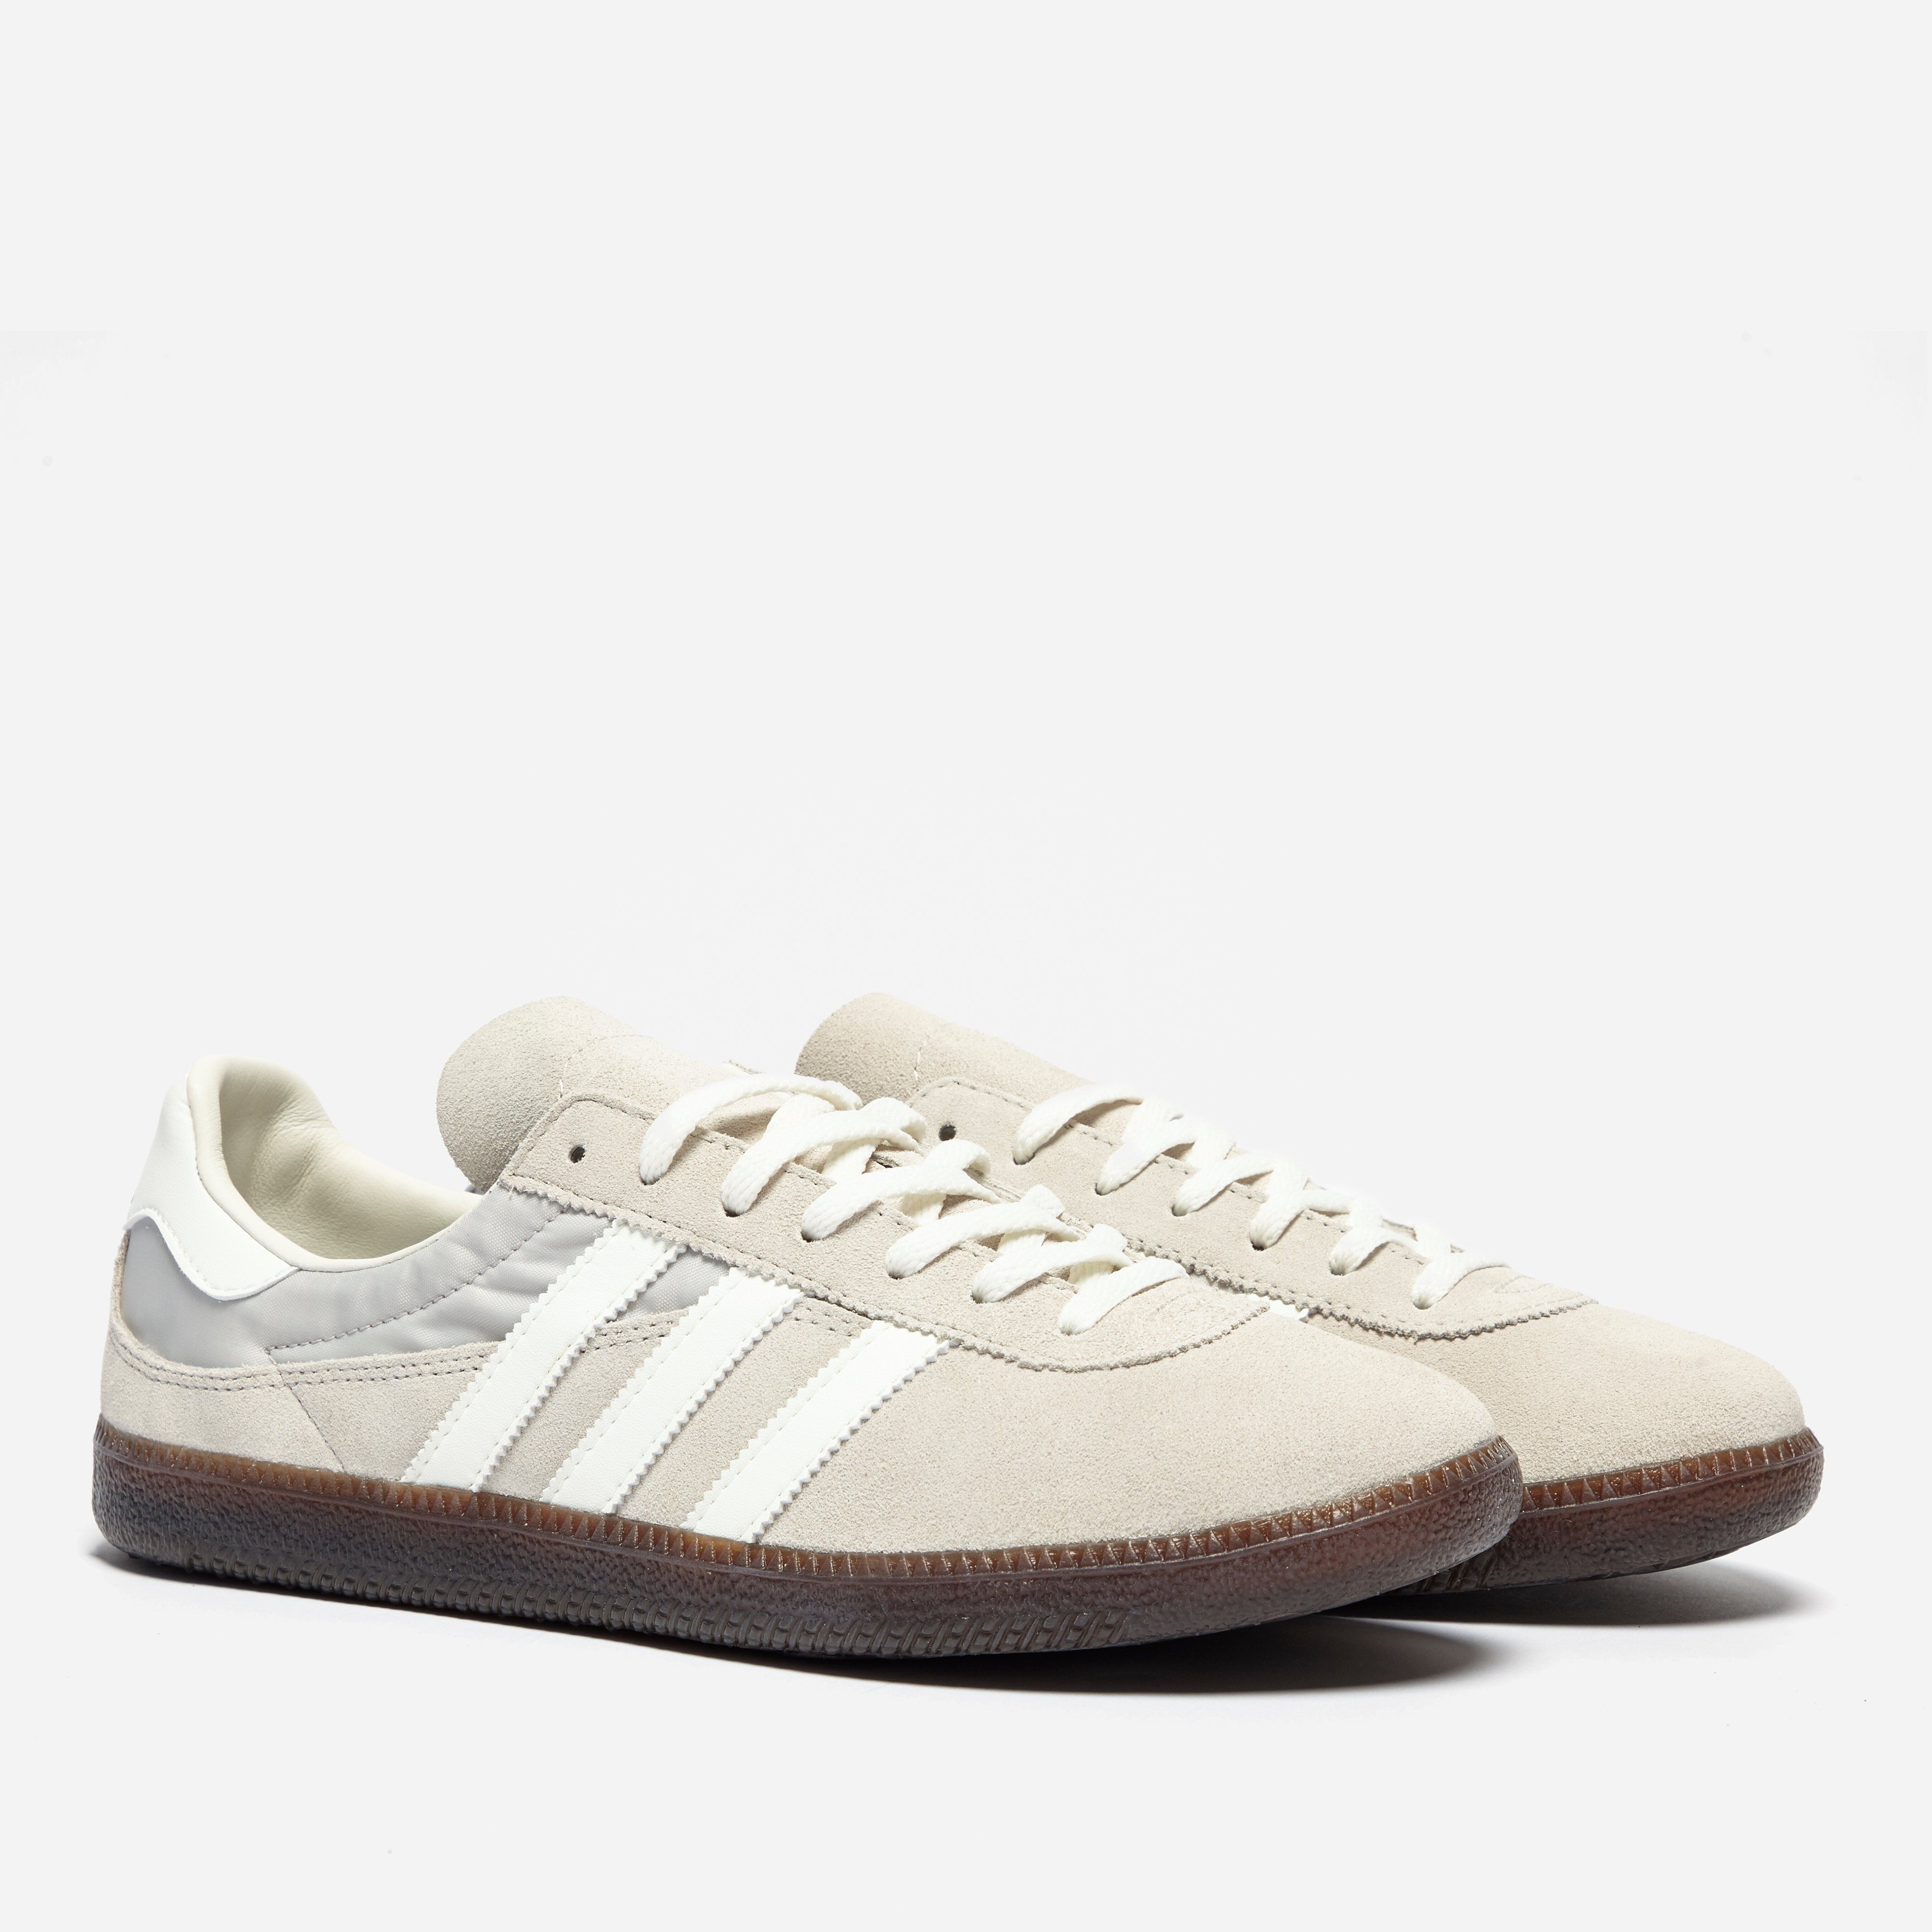 adidas Originals Wensley GT SPZL